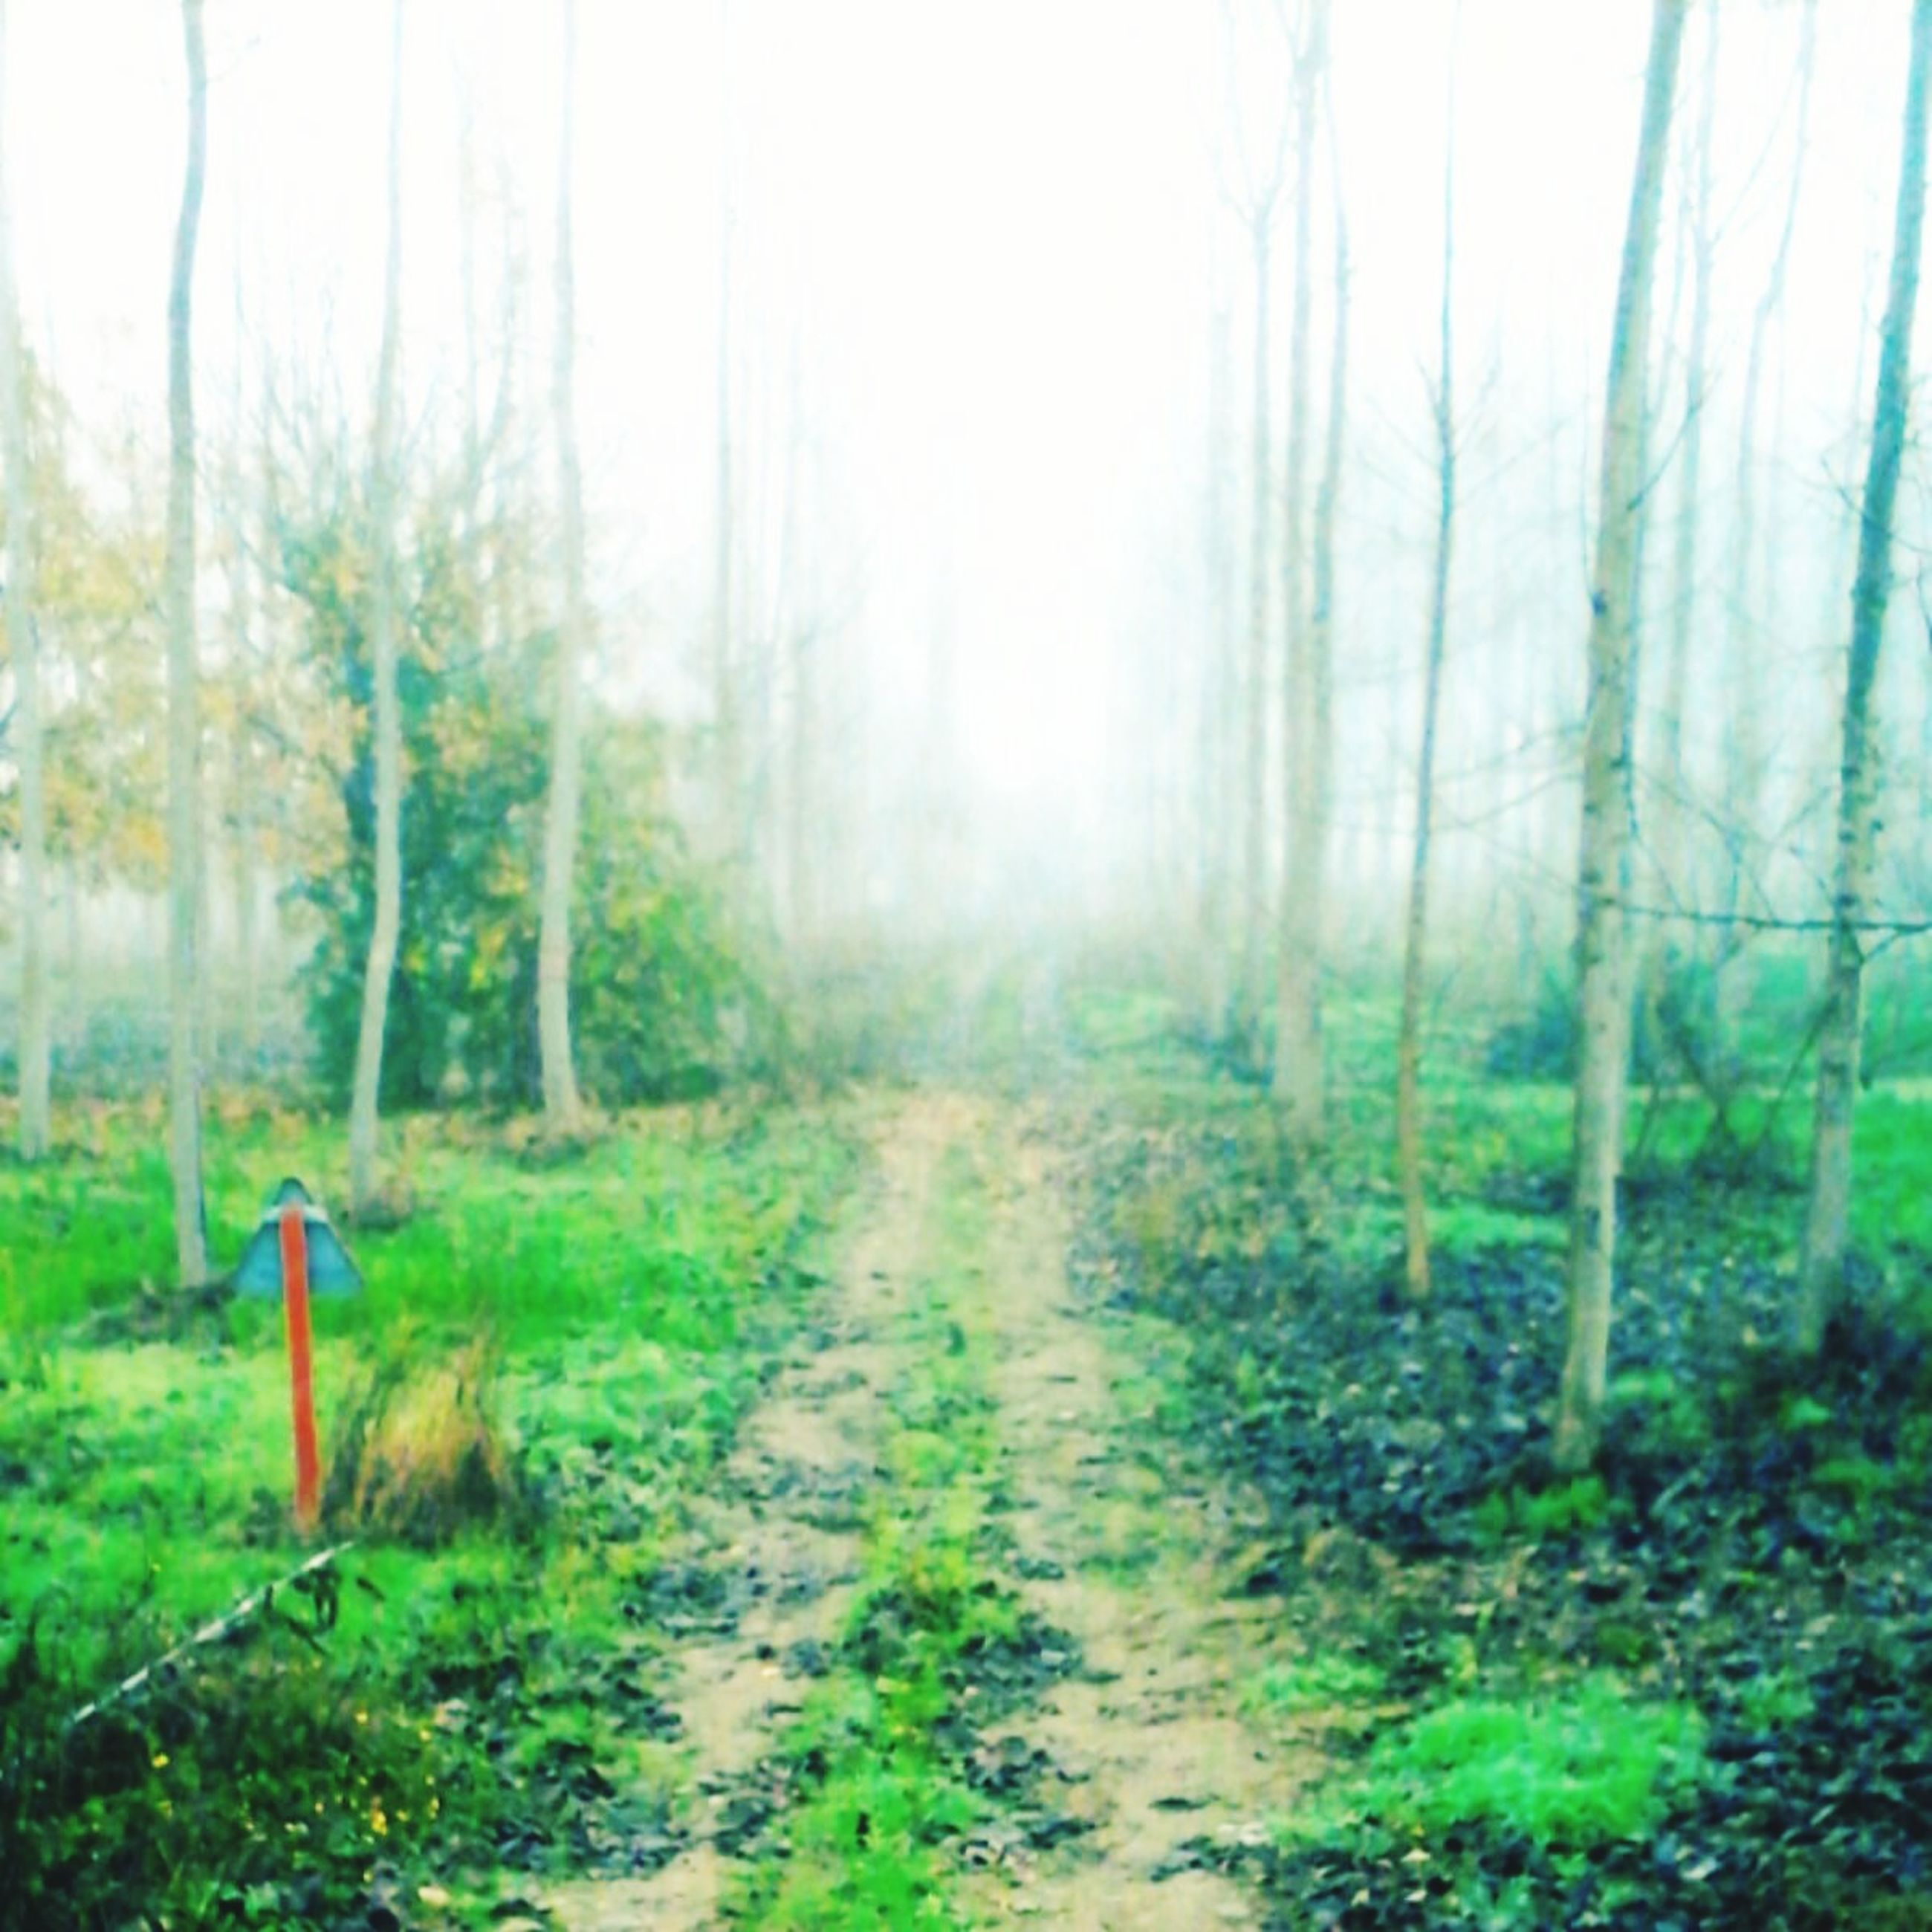 forest, no people, nature, day, tree, outdoors, grass, beauty in nature, sky